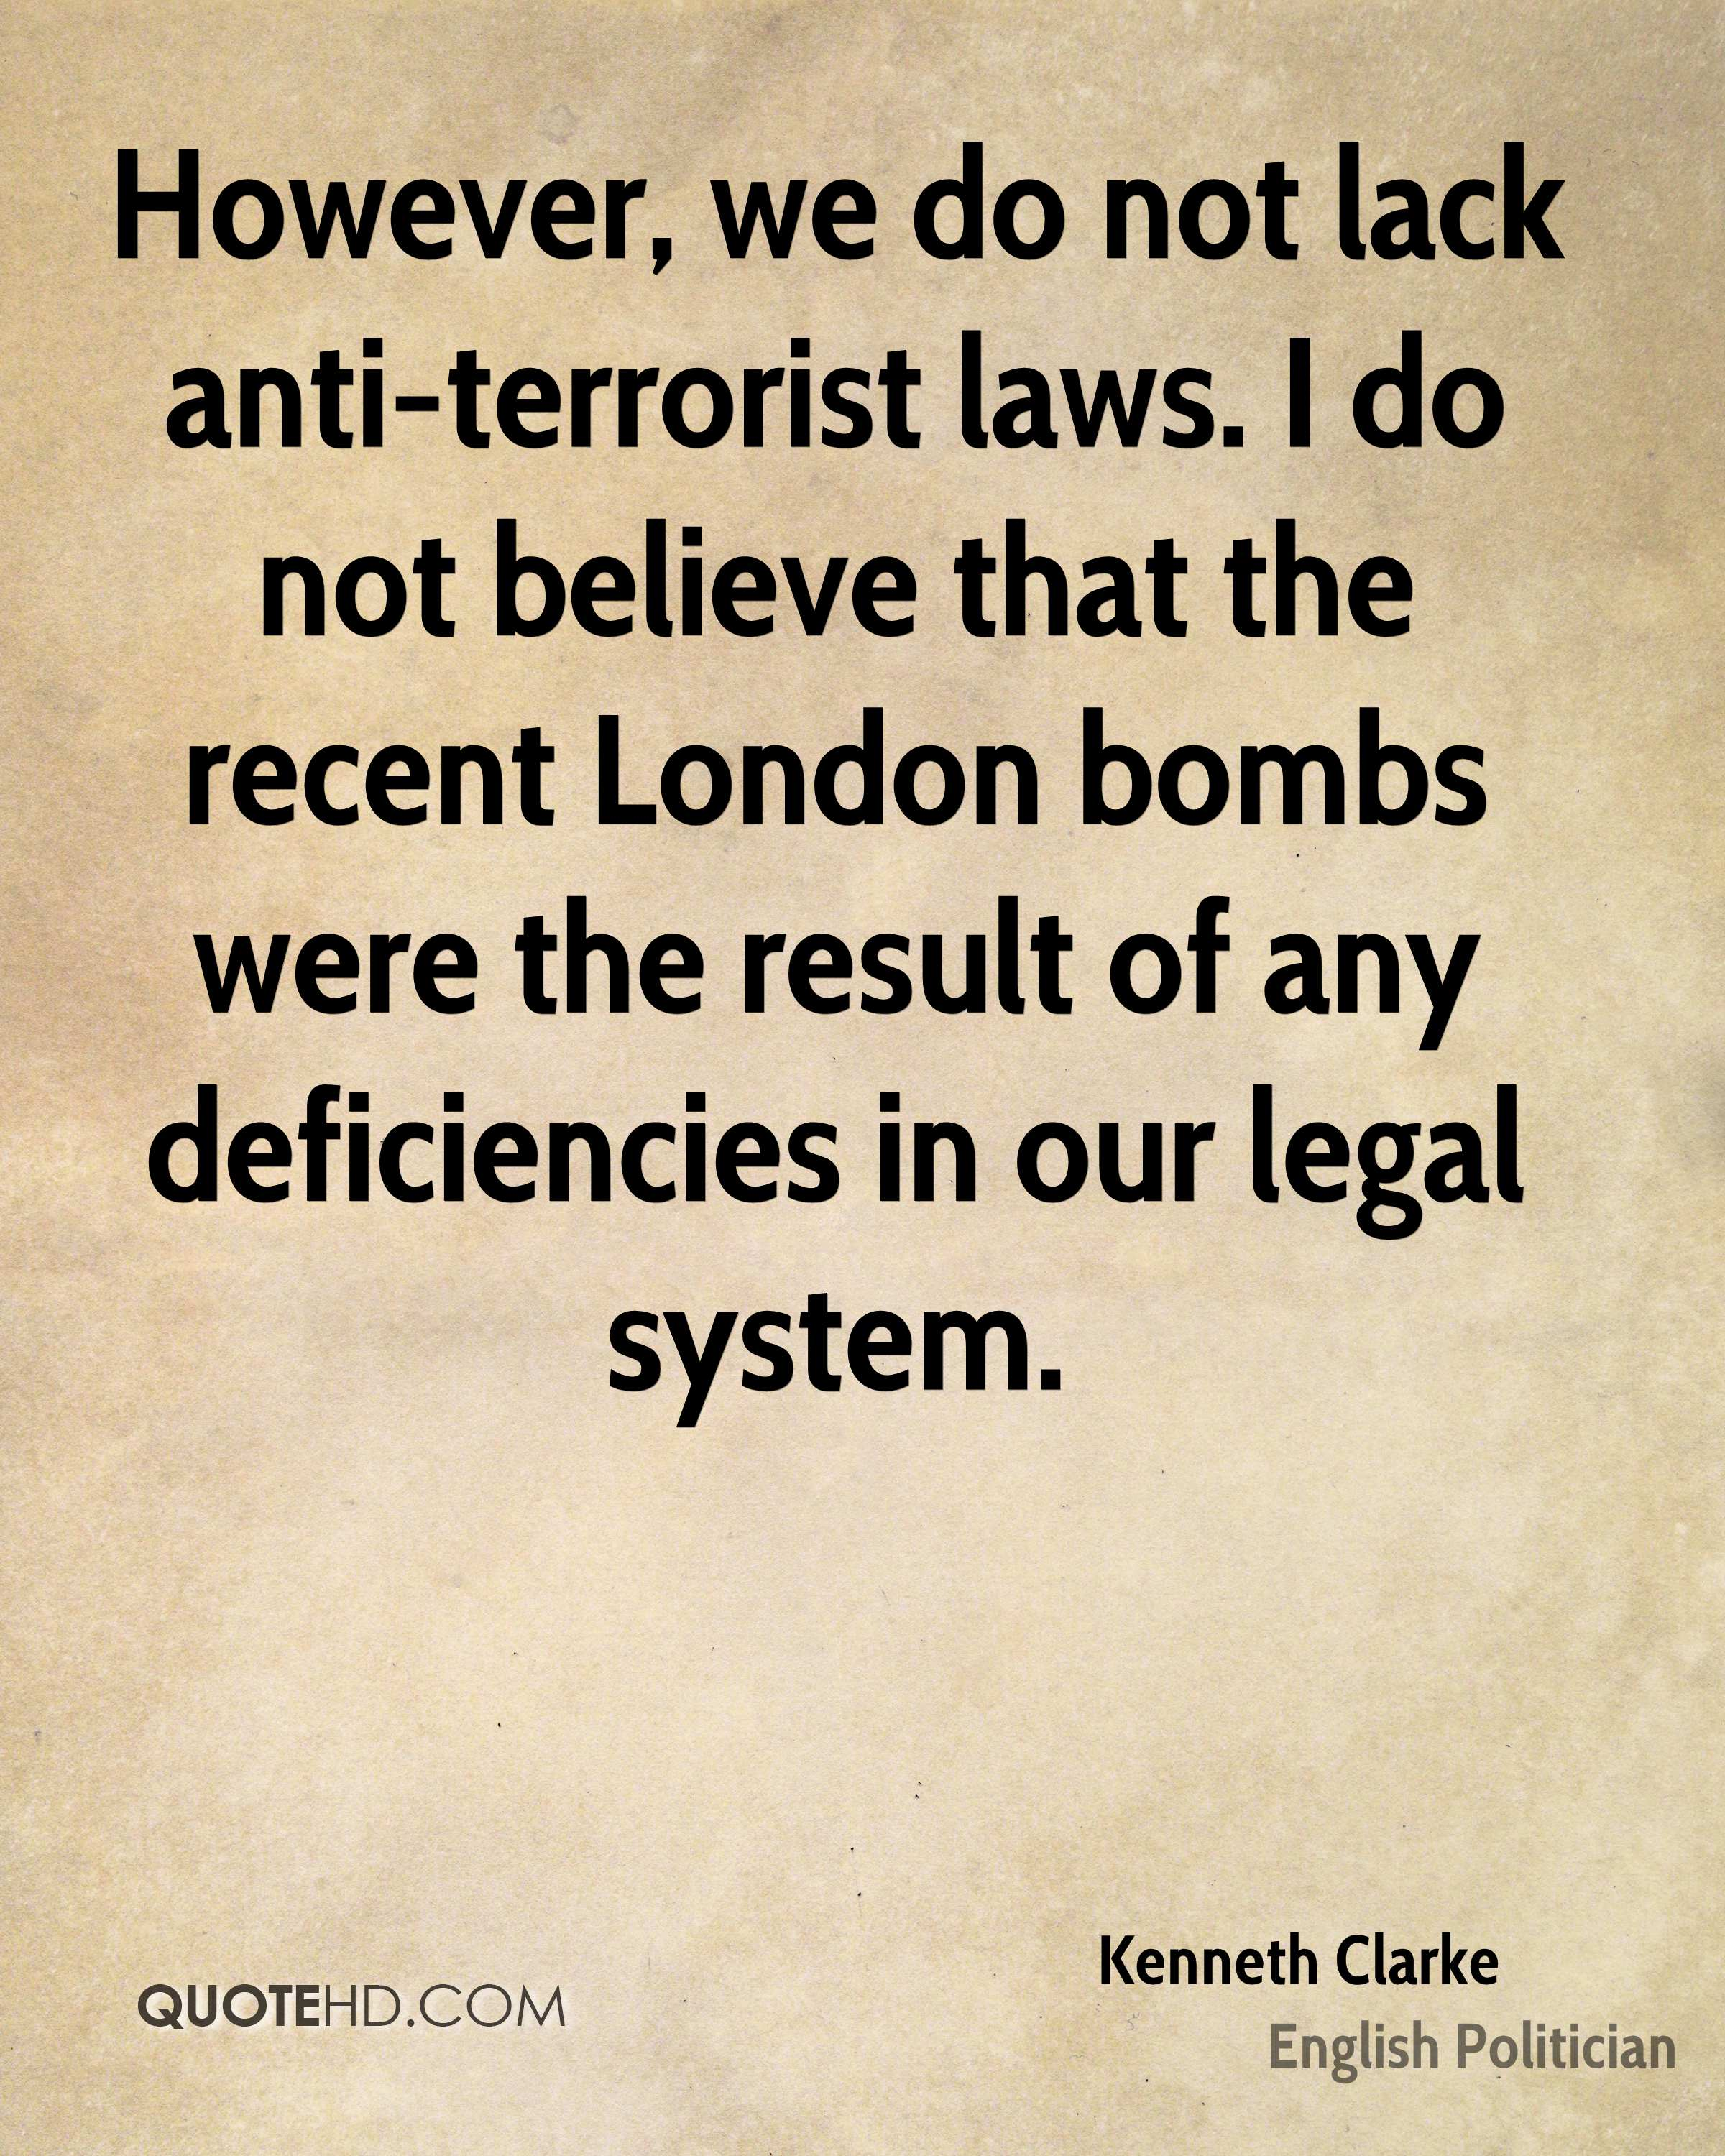 However, we do not lack anti-terrorist laws. I do not believe that the recent London bombs were the result of any deficiencies in our legal system.